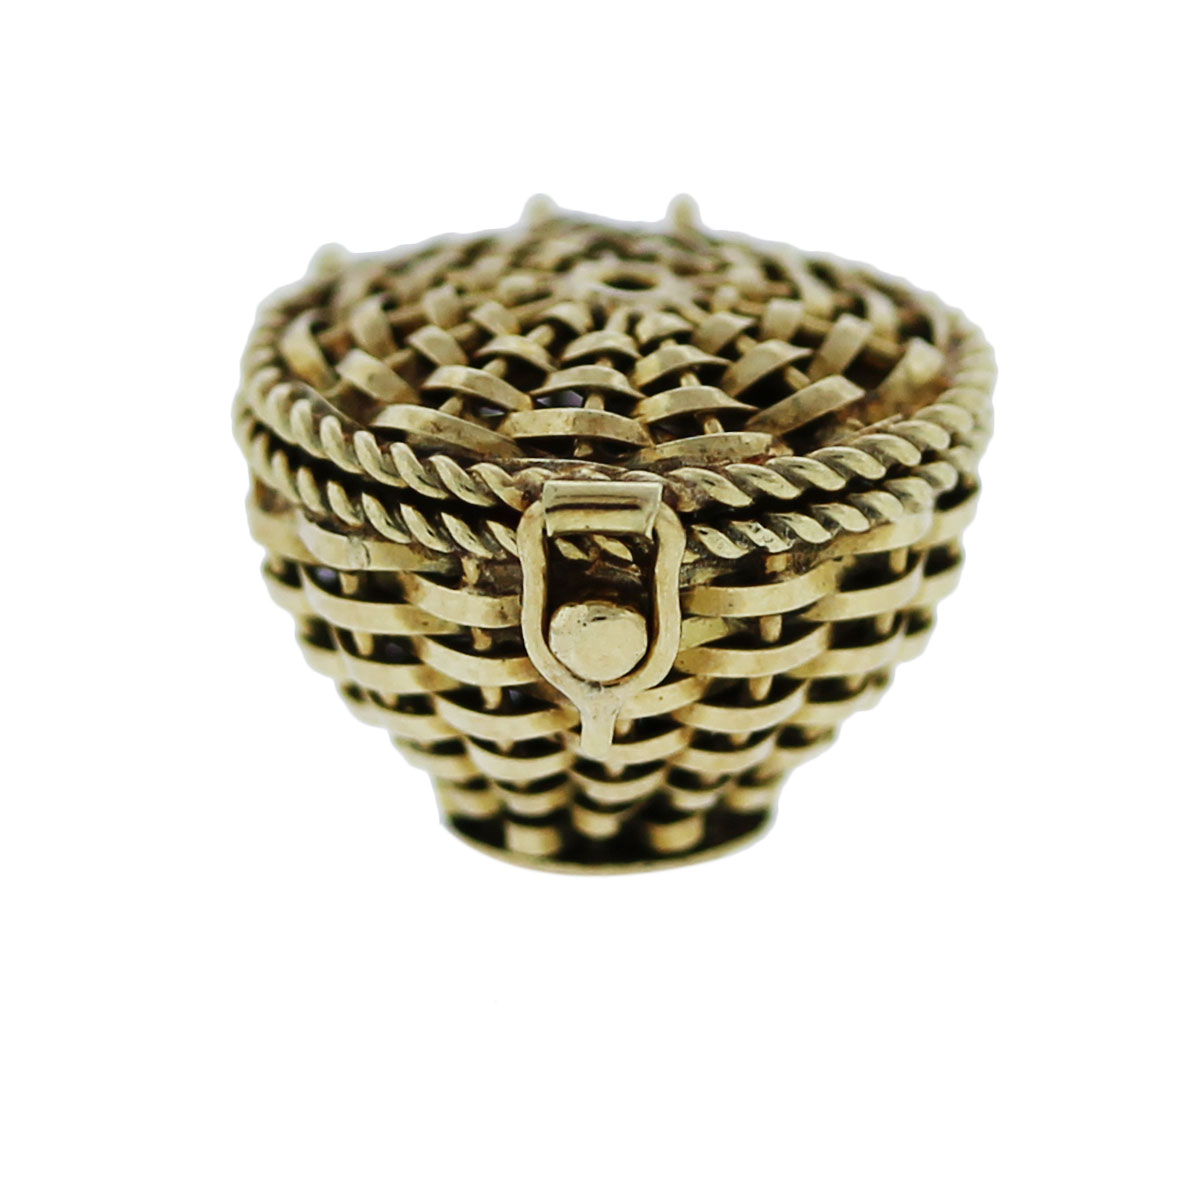 Yellow Gold Snake in a Basket Pendant